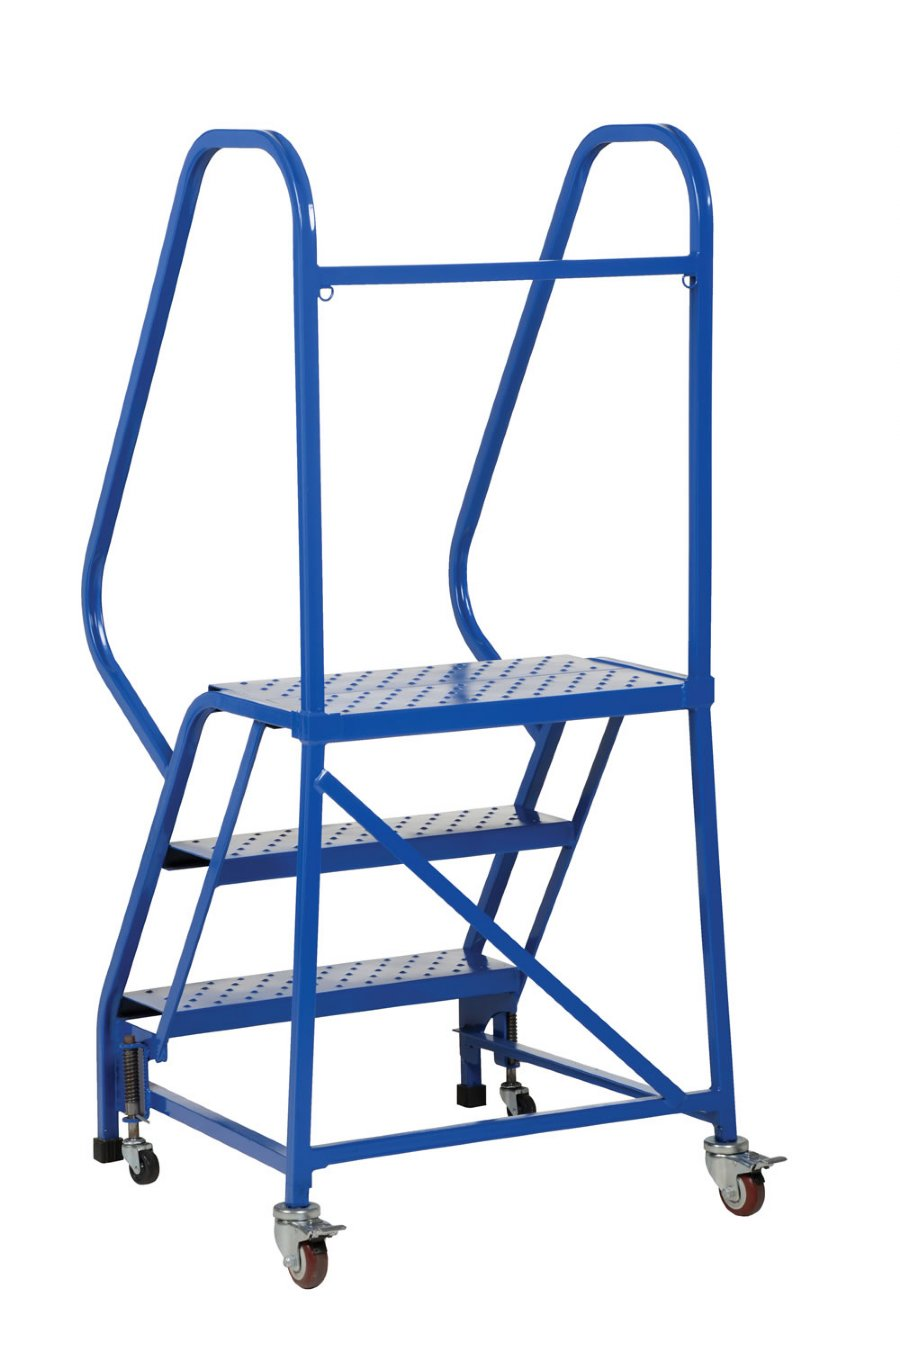 7 Step Portable Warehouse Ladders With 18 Wide Perforated